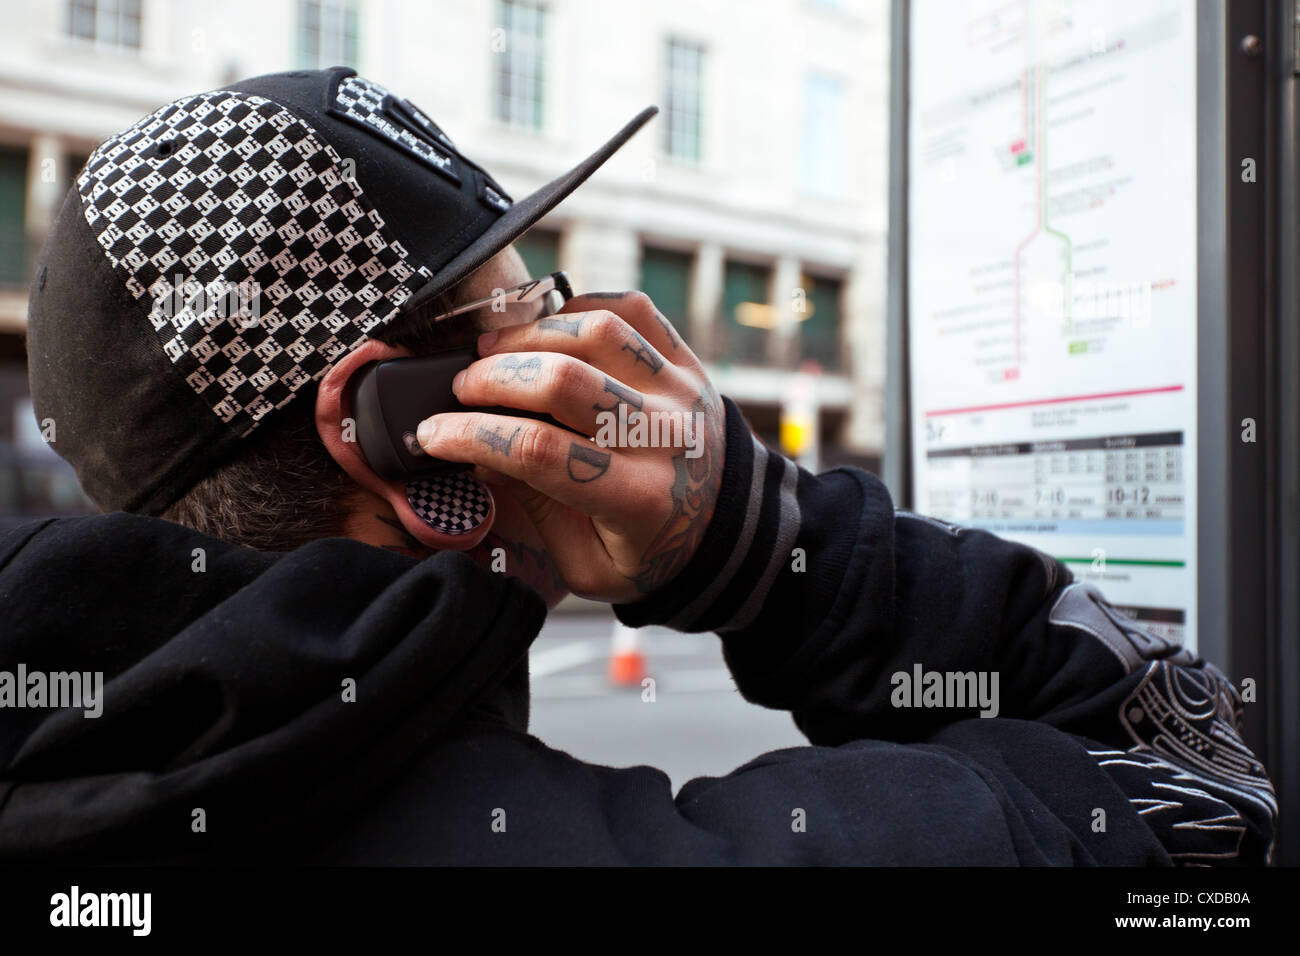 UK, London, a young man in Piccadilly Circus Stock Photo